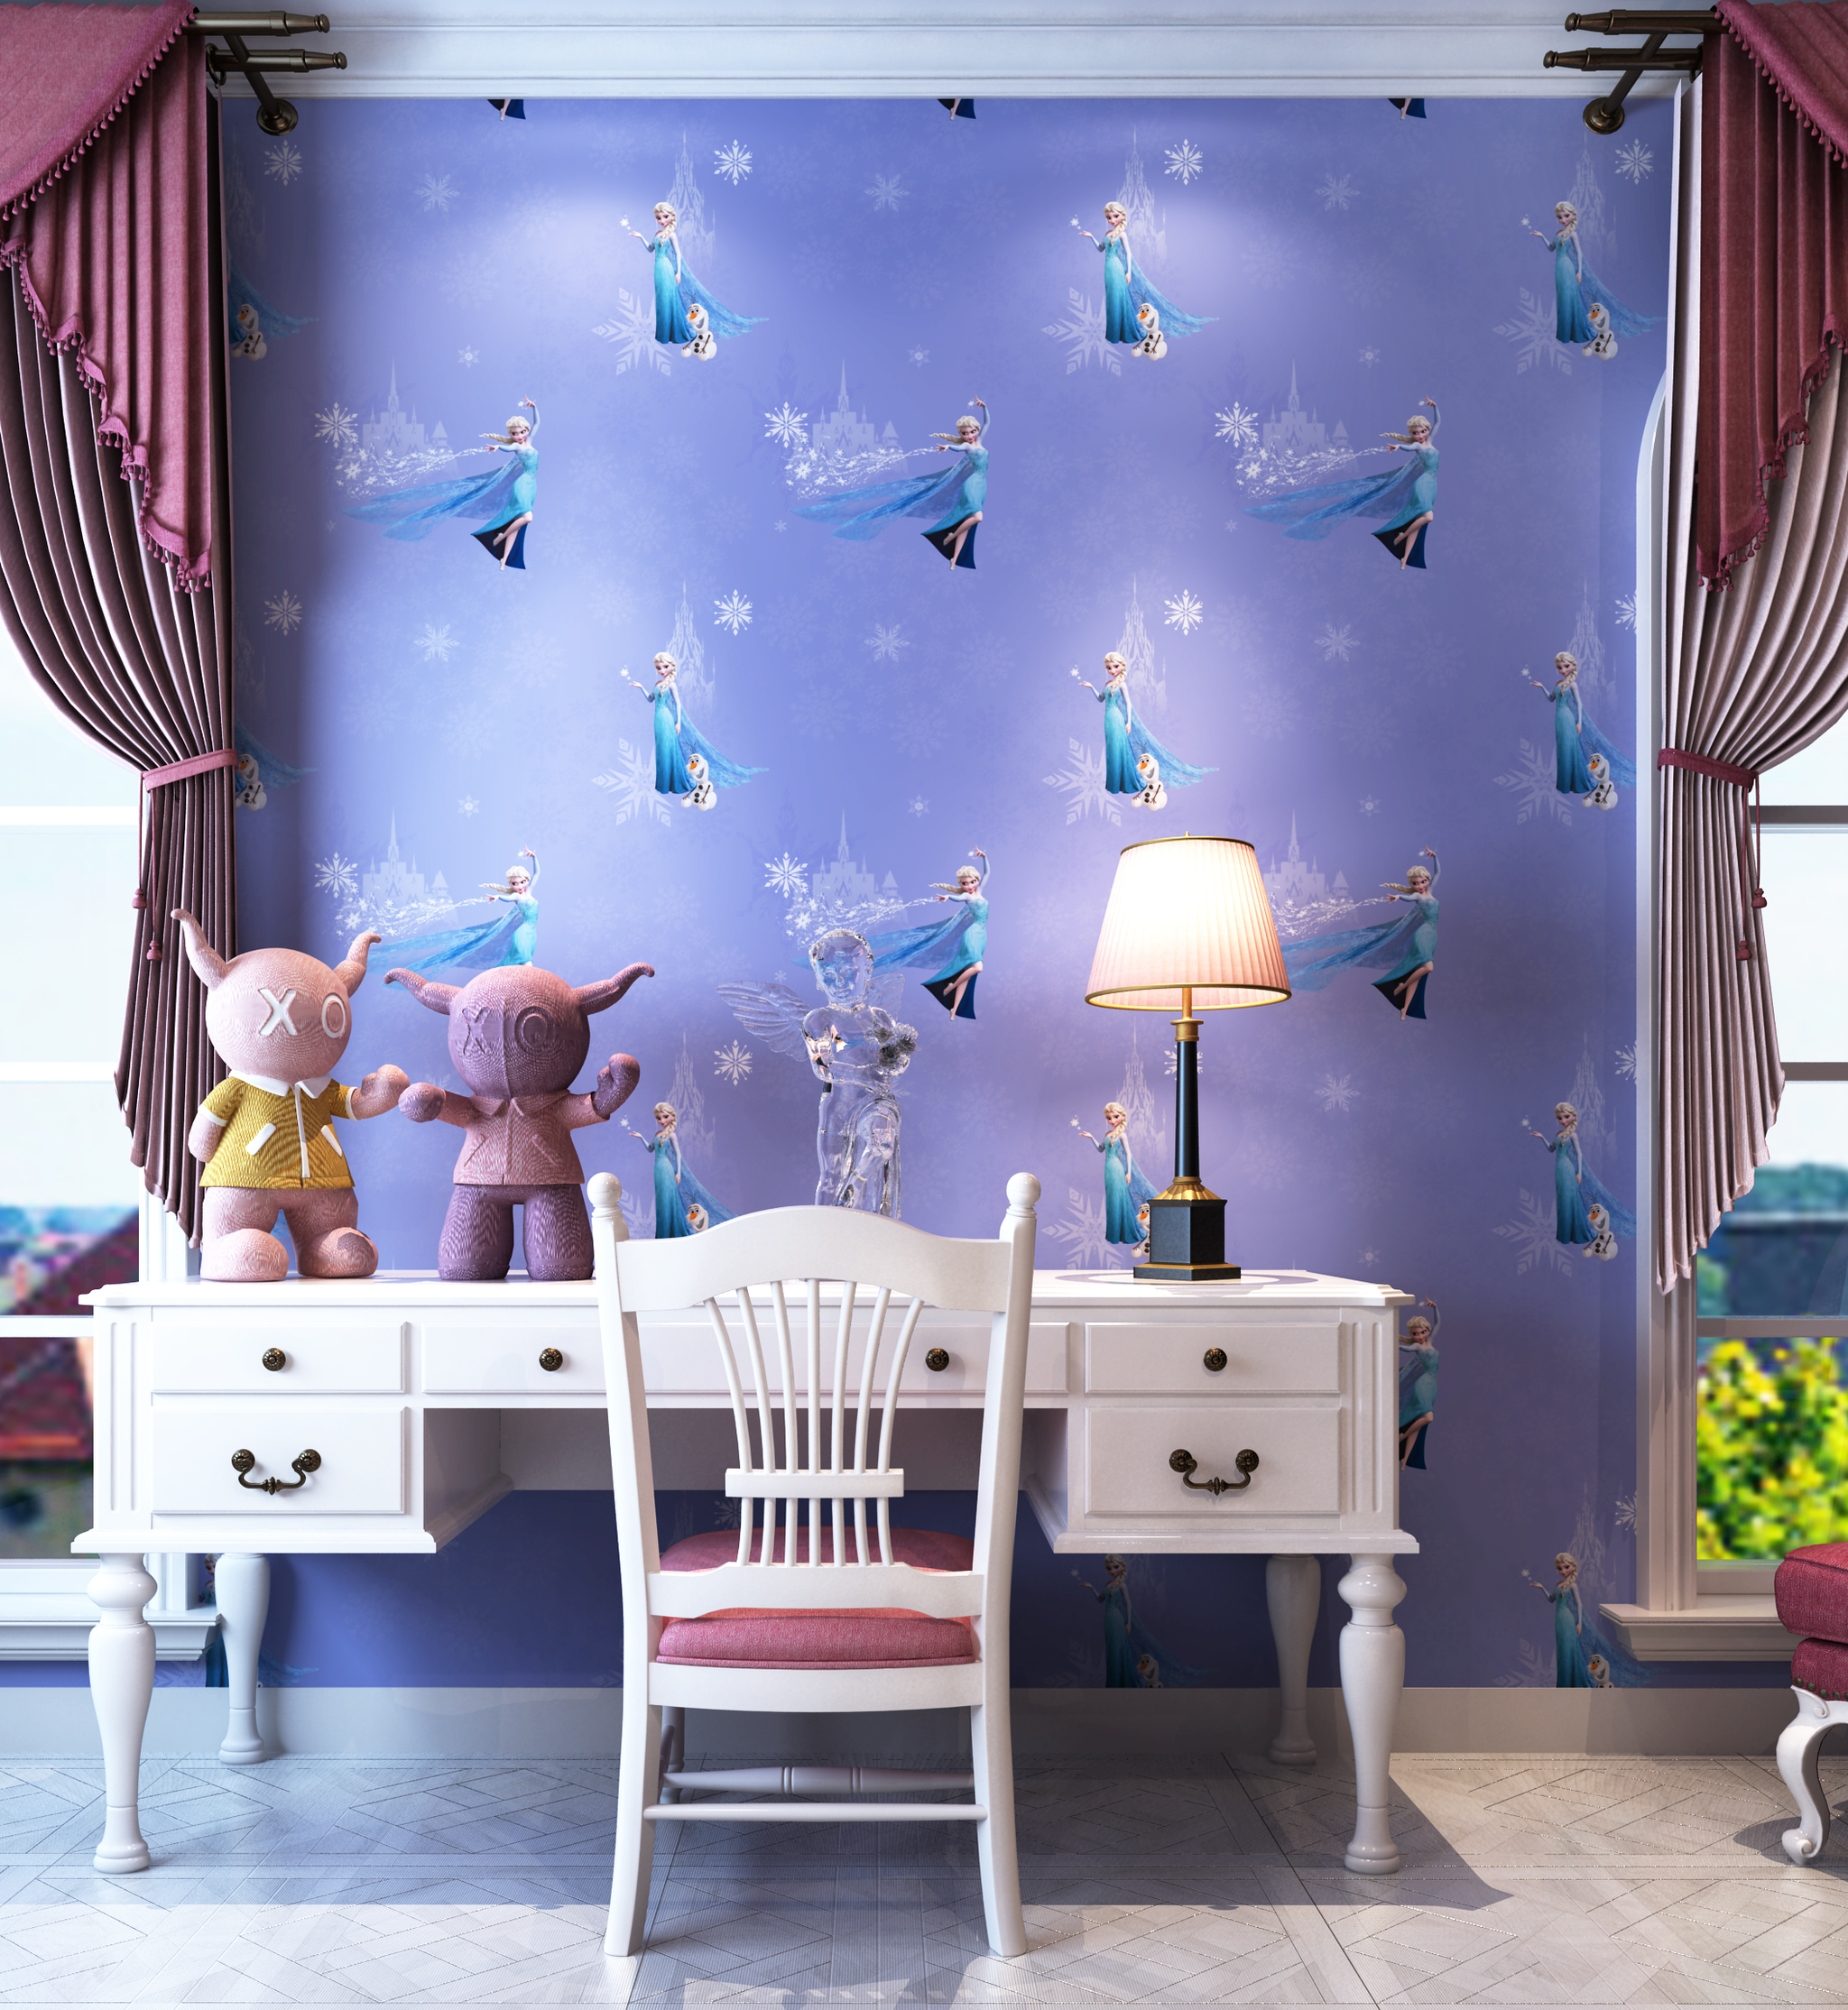 Jual Wallpaper Dinding Frozen Mulia Interior Tokopedia